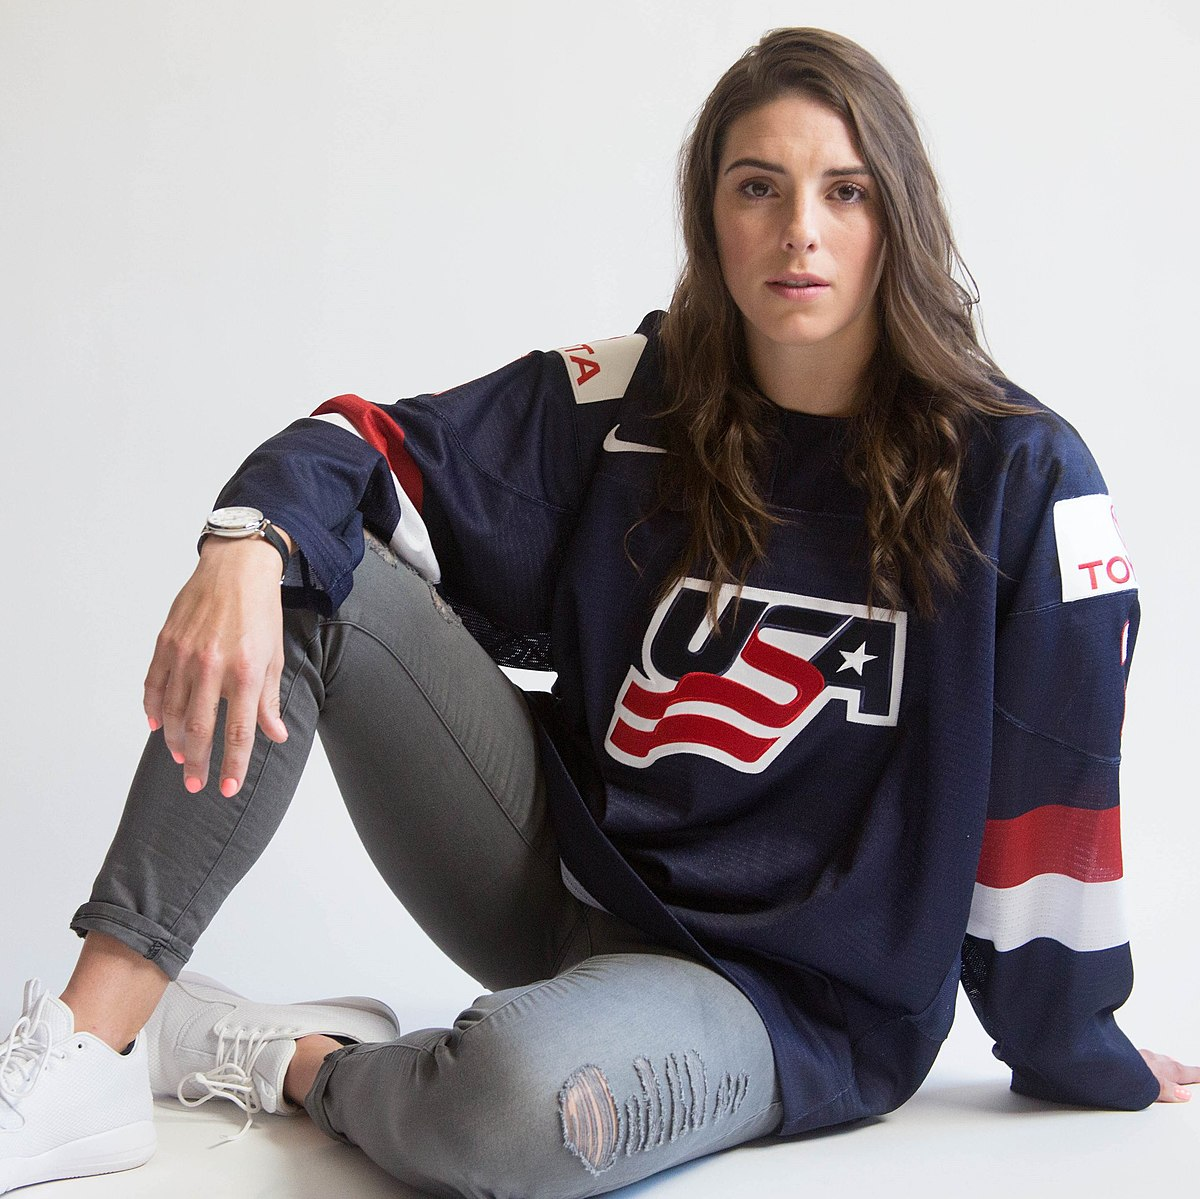 Hilary knight fappening